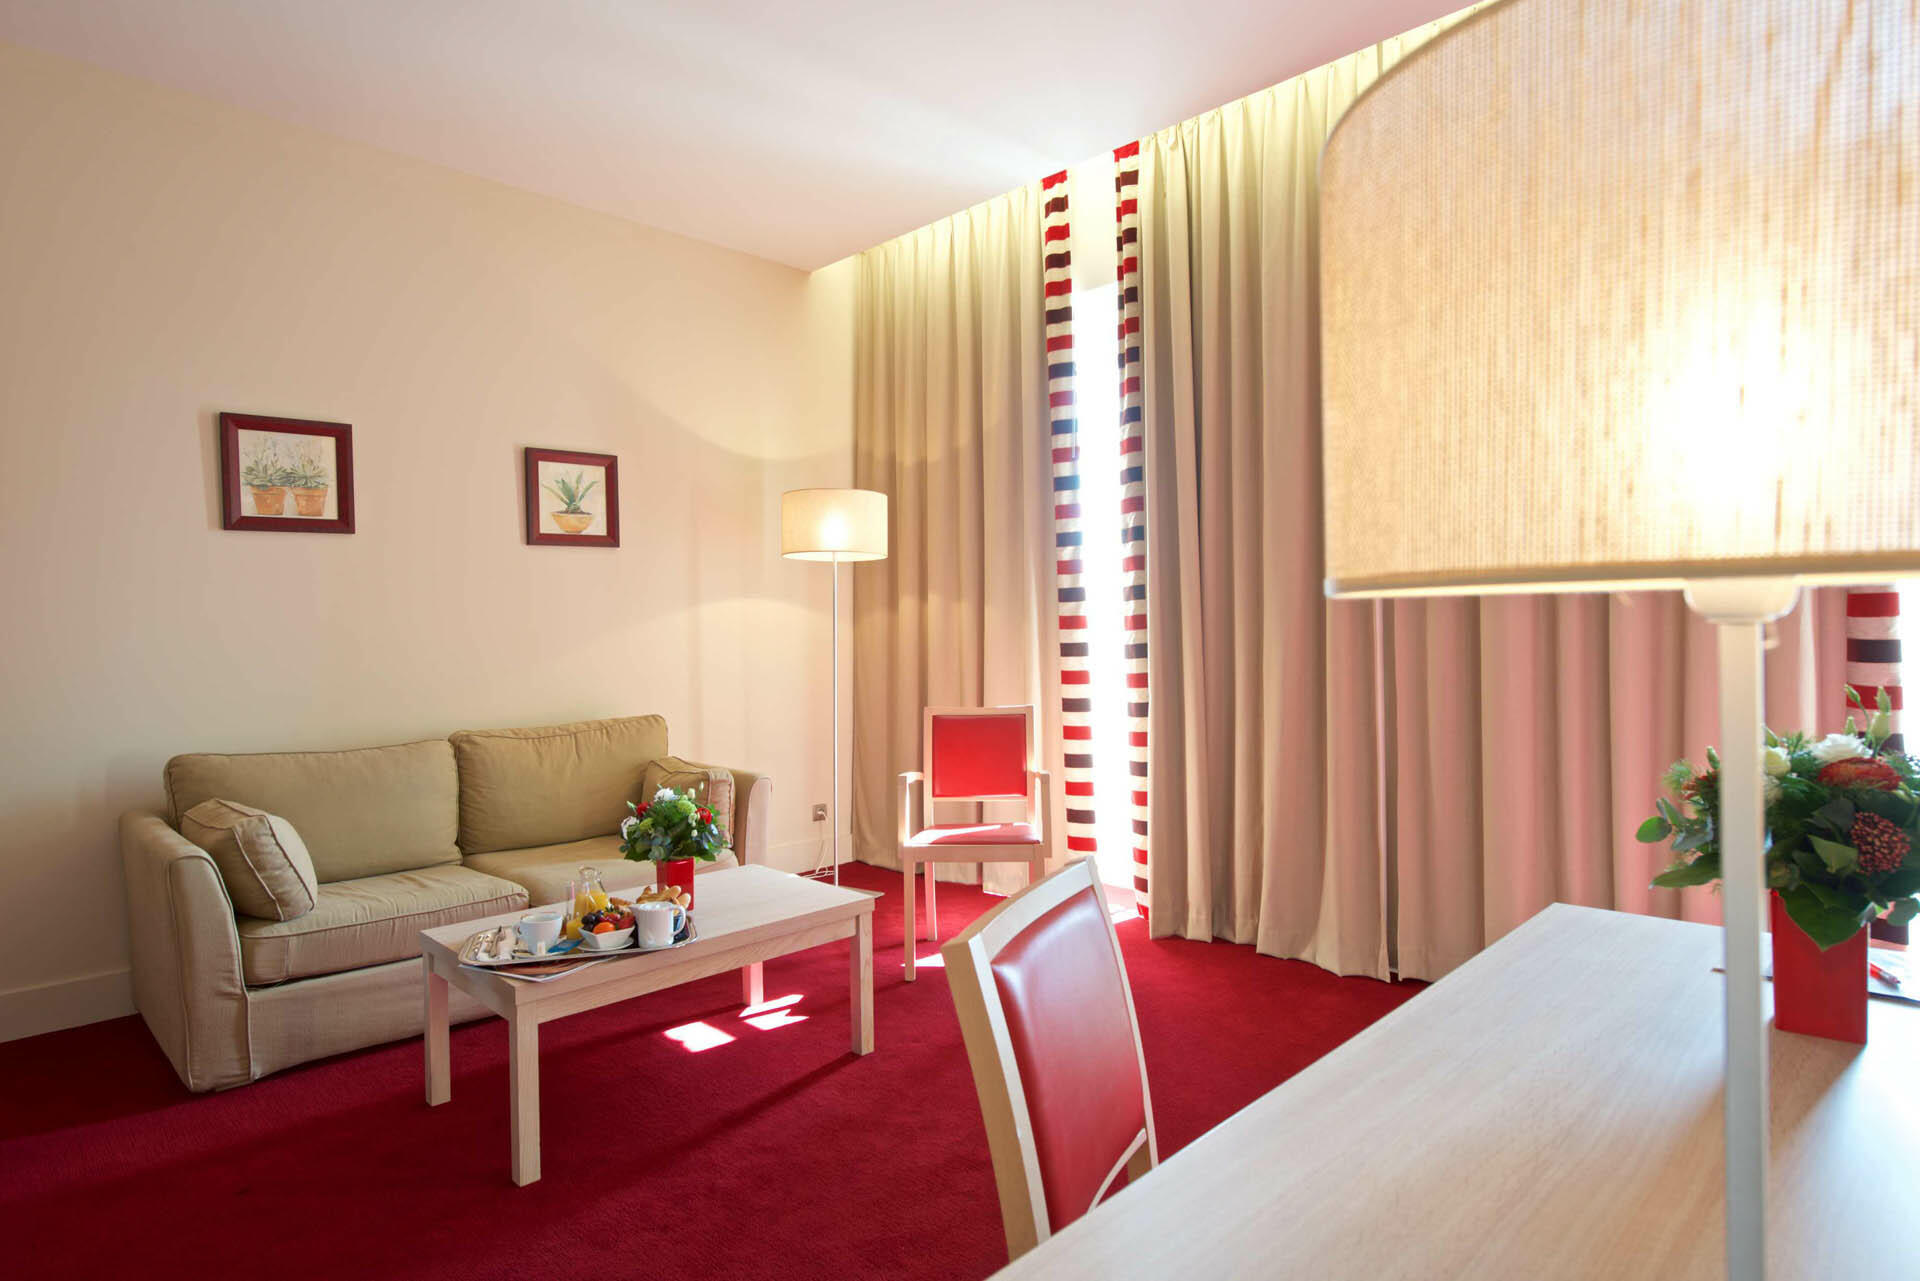 Junior Suite at Hôtel du Parc in Salies-de-Béarn, France